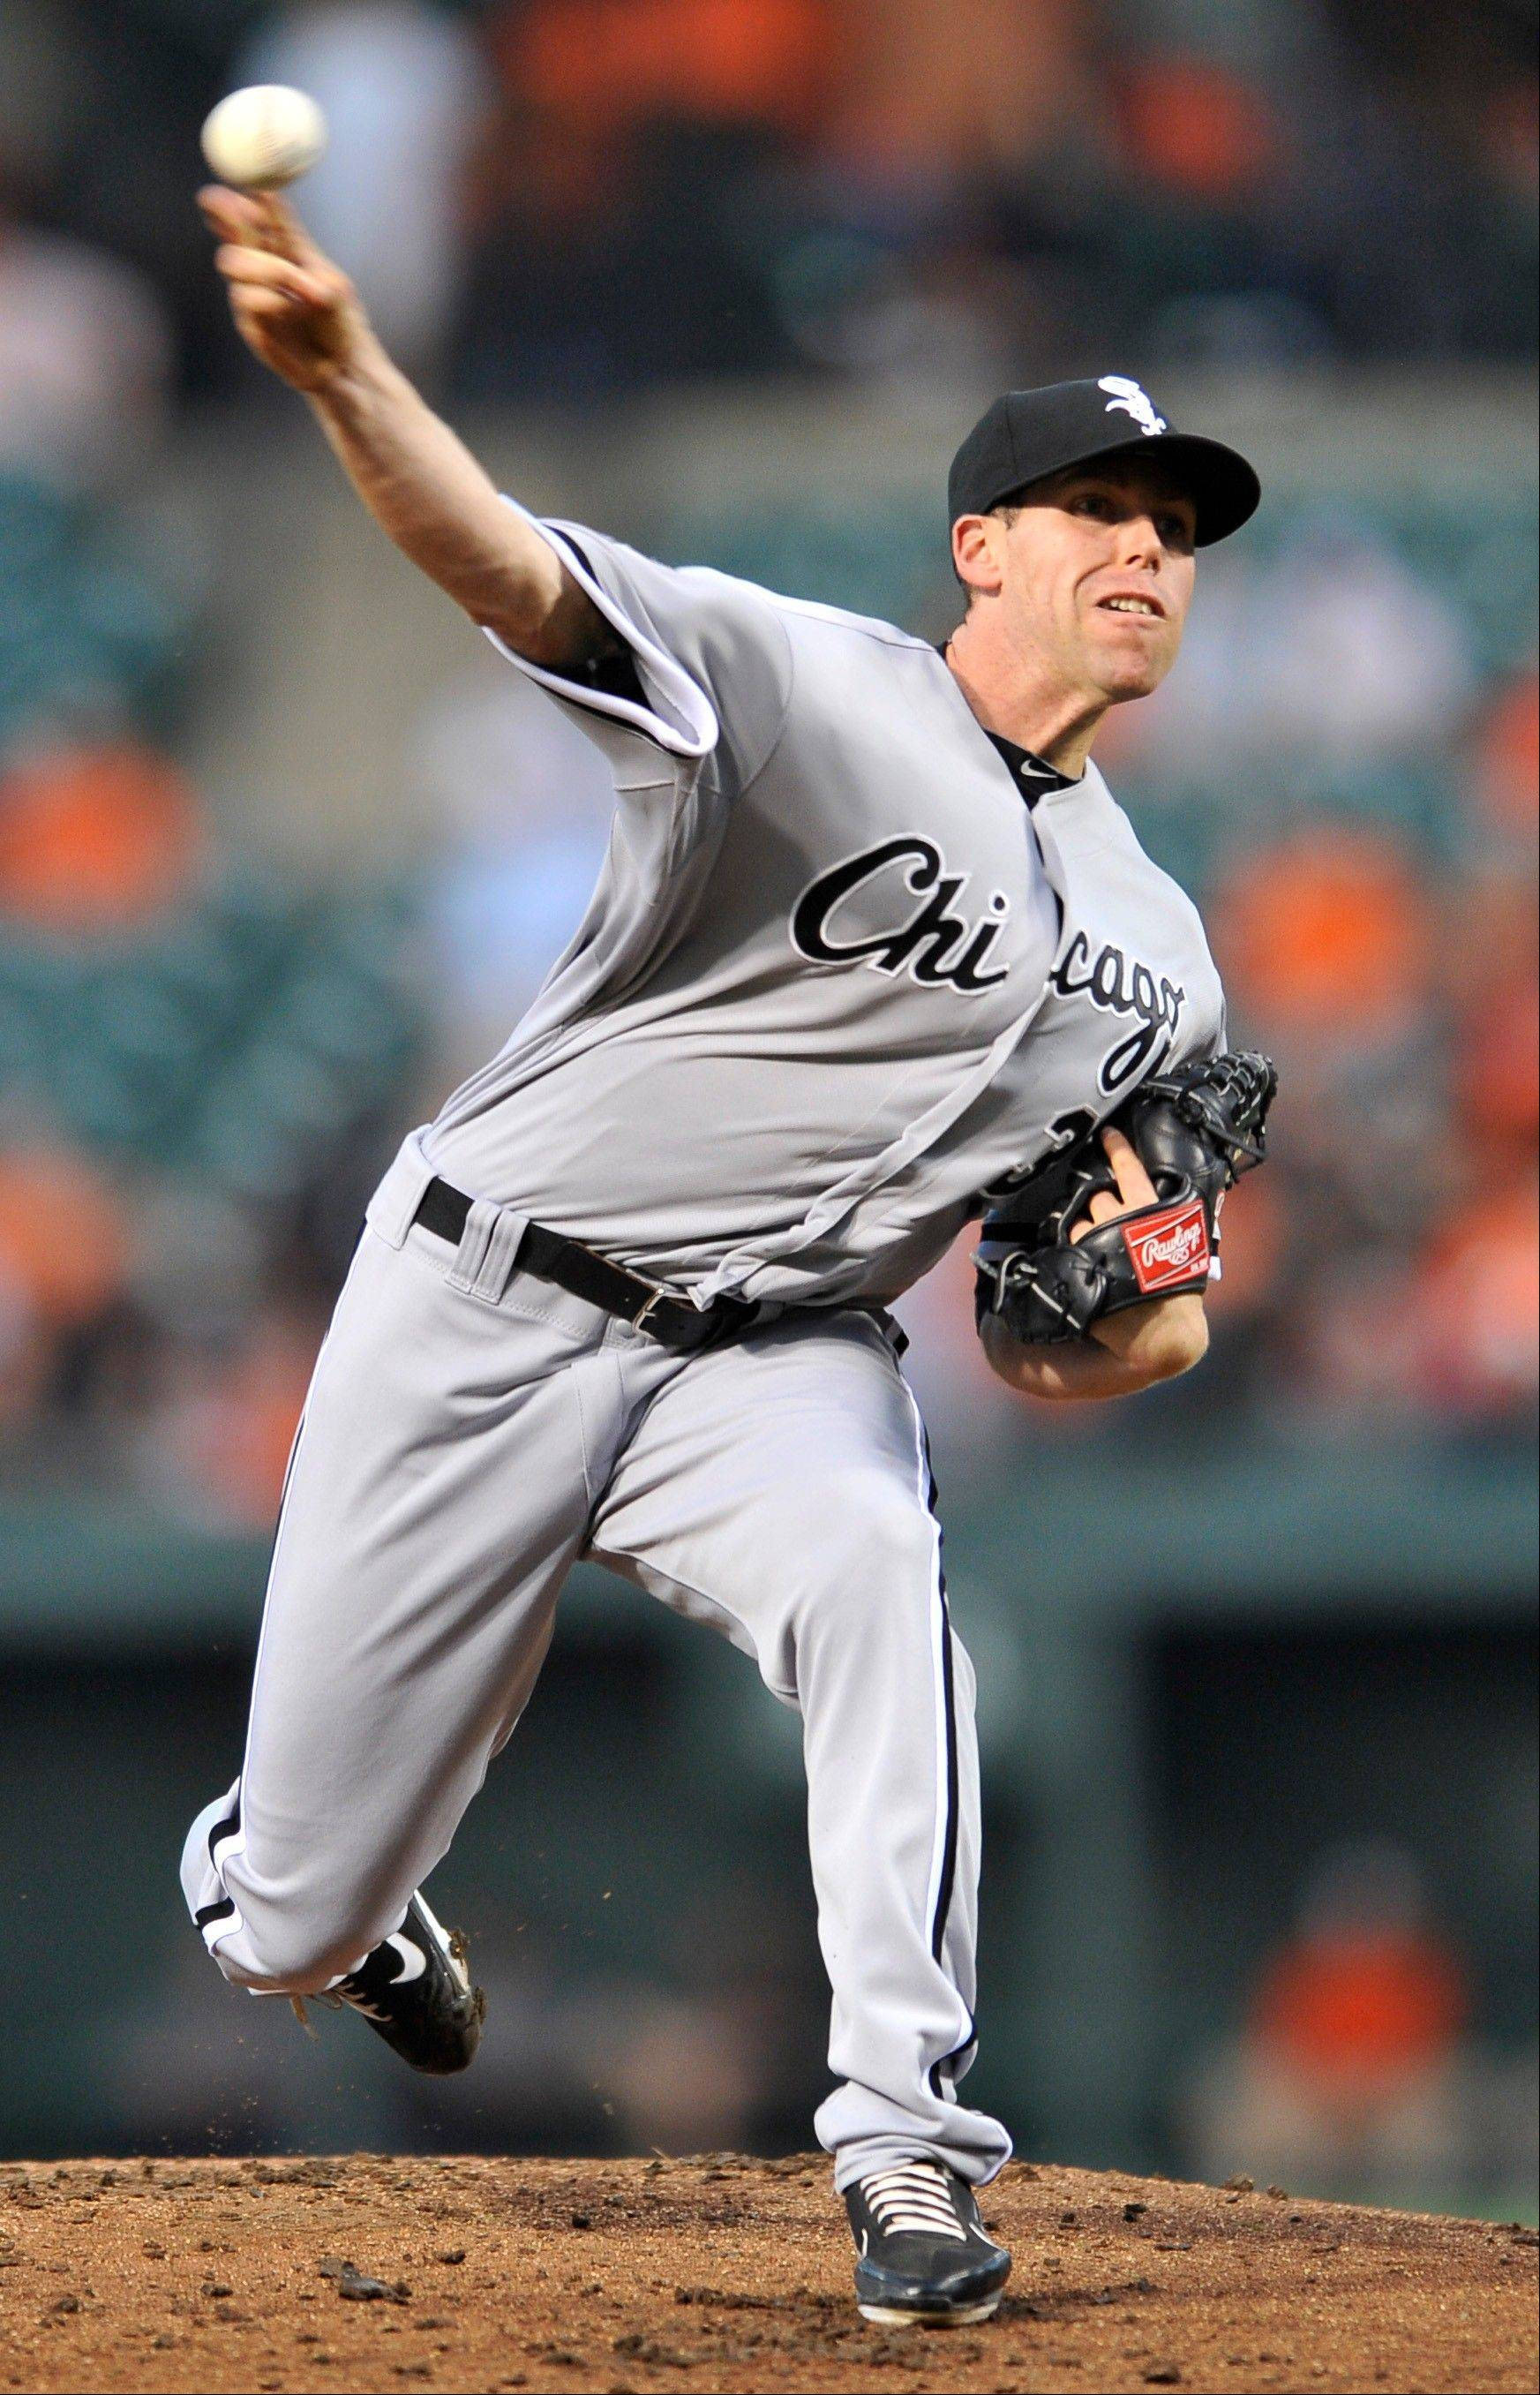 Chicago White Sox pitcher Dylan Axelrod delivers against the Baltimore Orioles in the first inning of a baseball game on Wednesday in Baltimore.